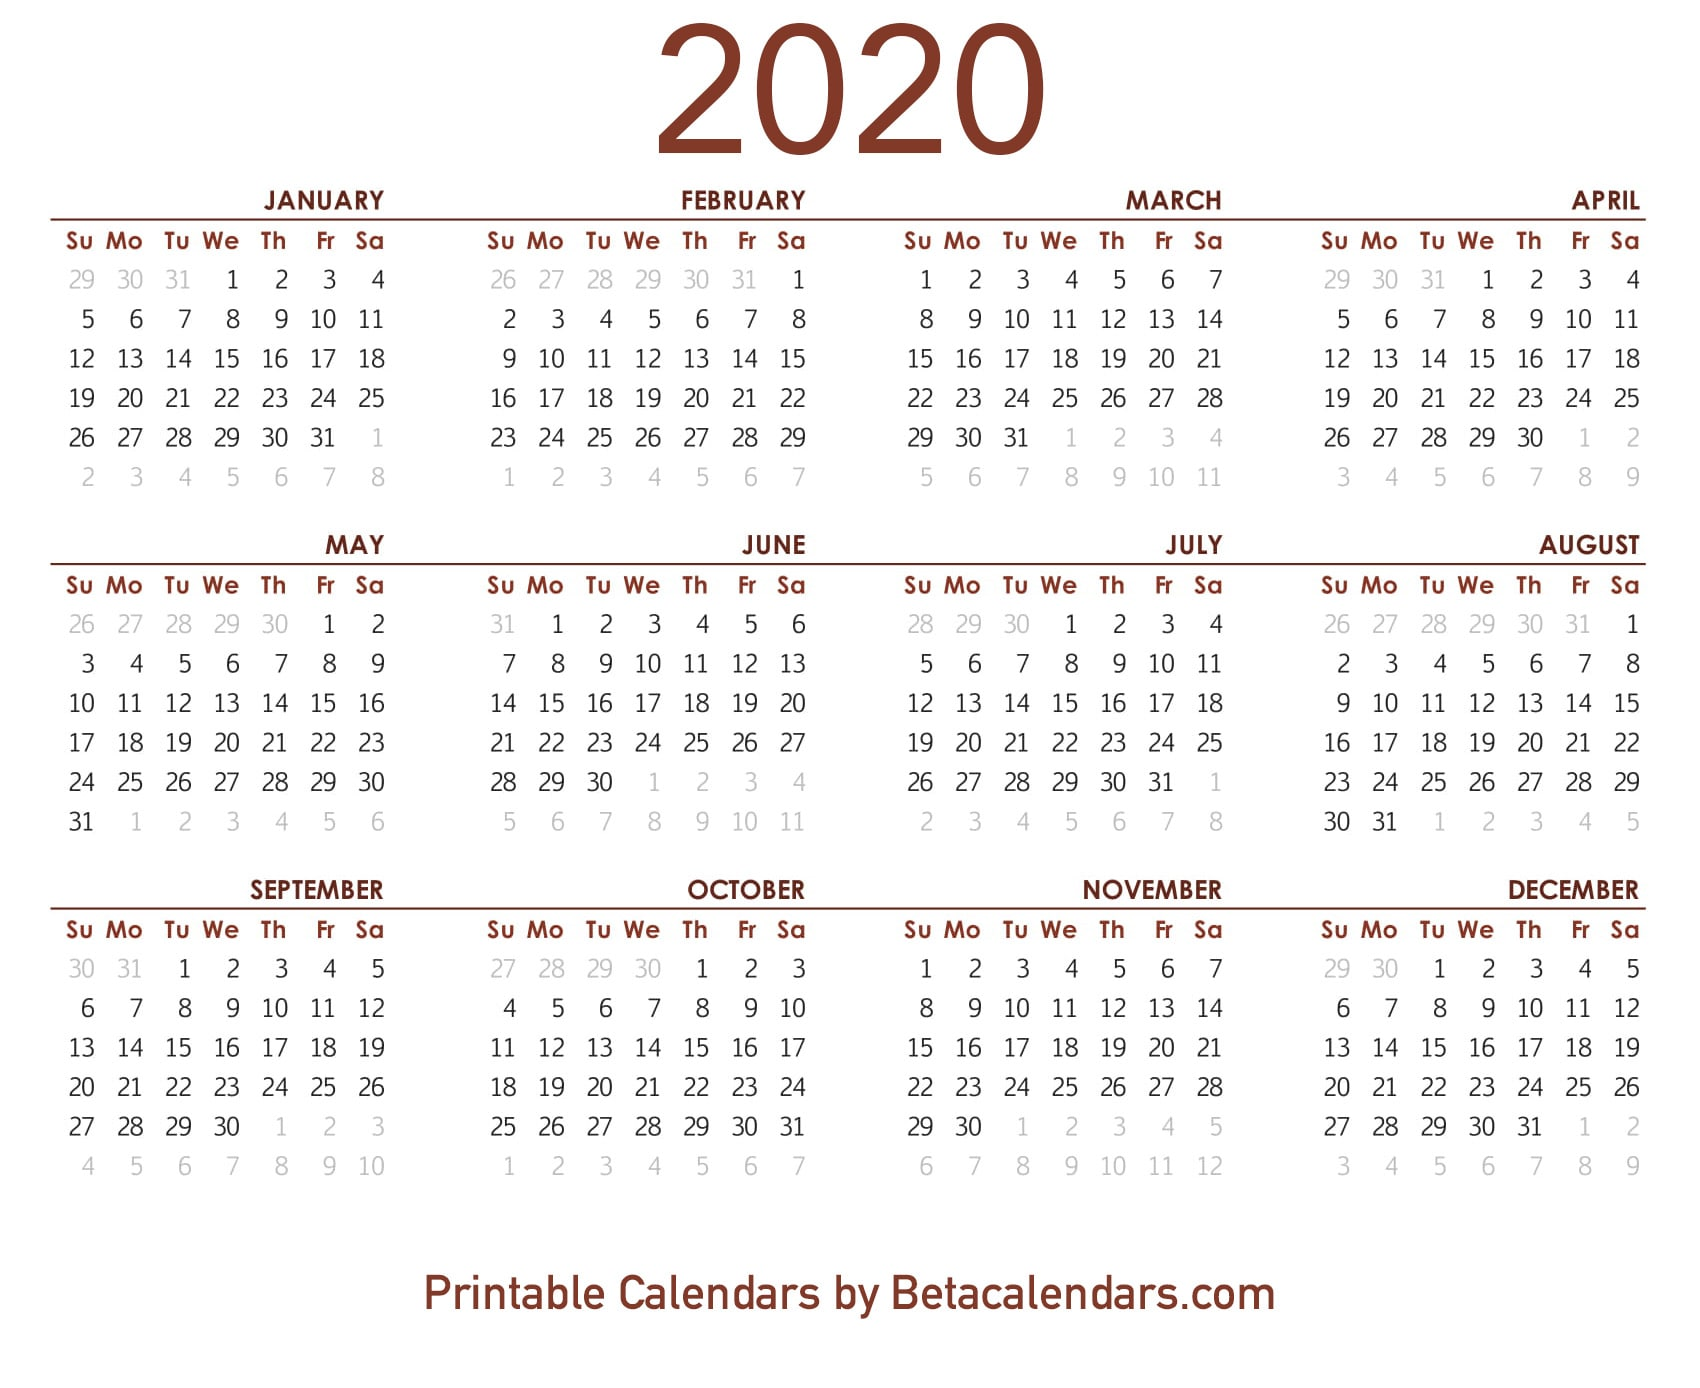 image about 2020 Calendar Printable identify 2020 Calendar - Beta Calendars